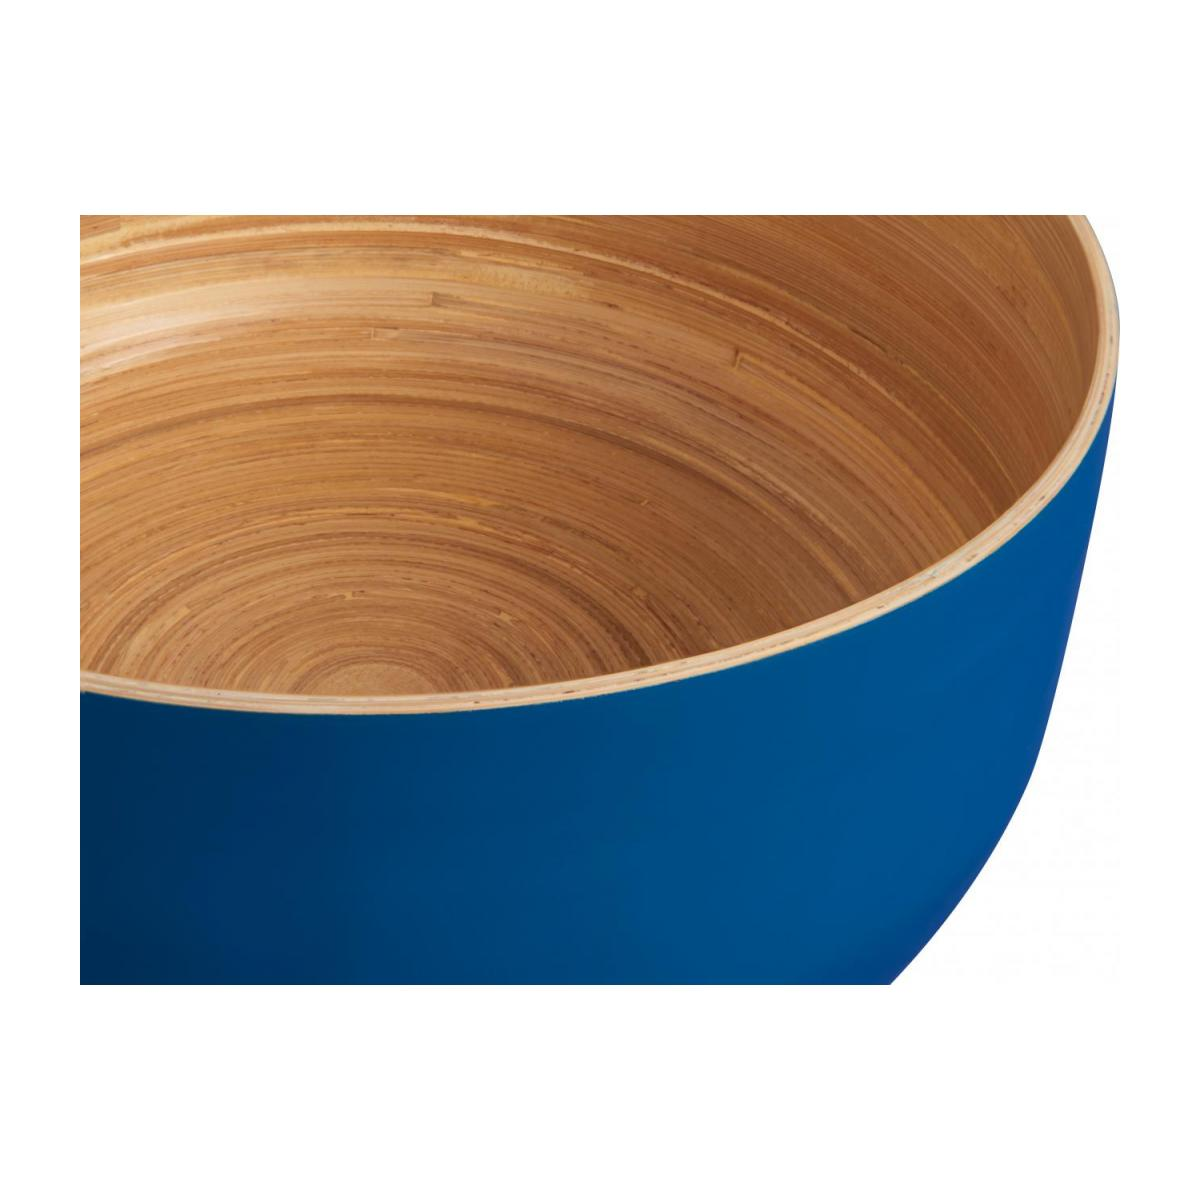 Grand Bowl made of bamboo 25cm, blue n°2